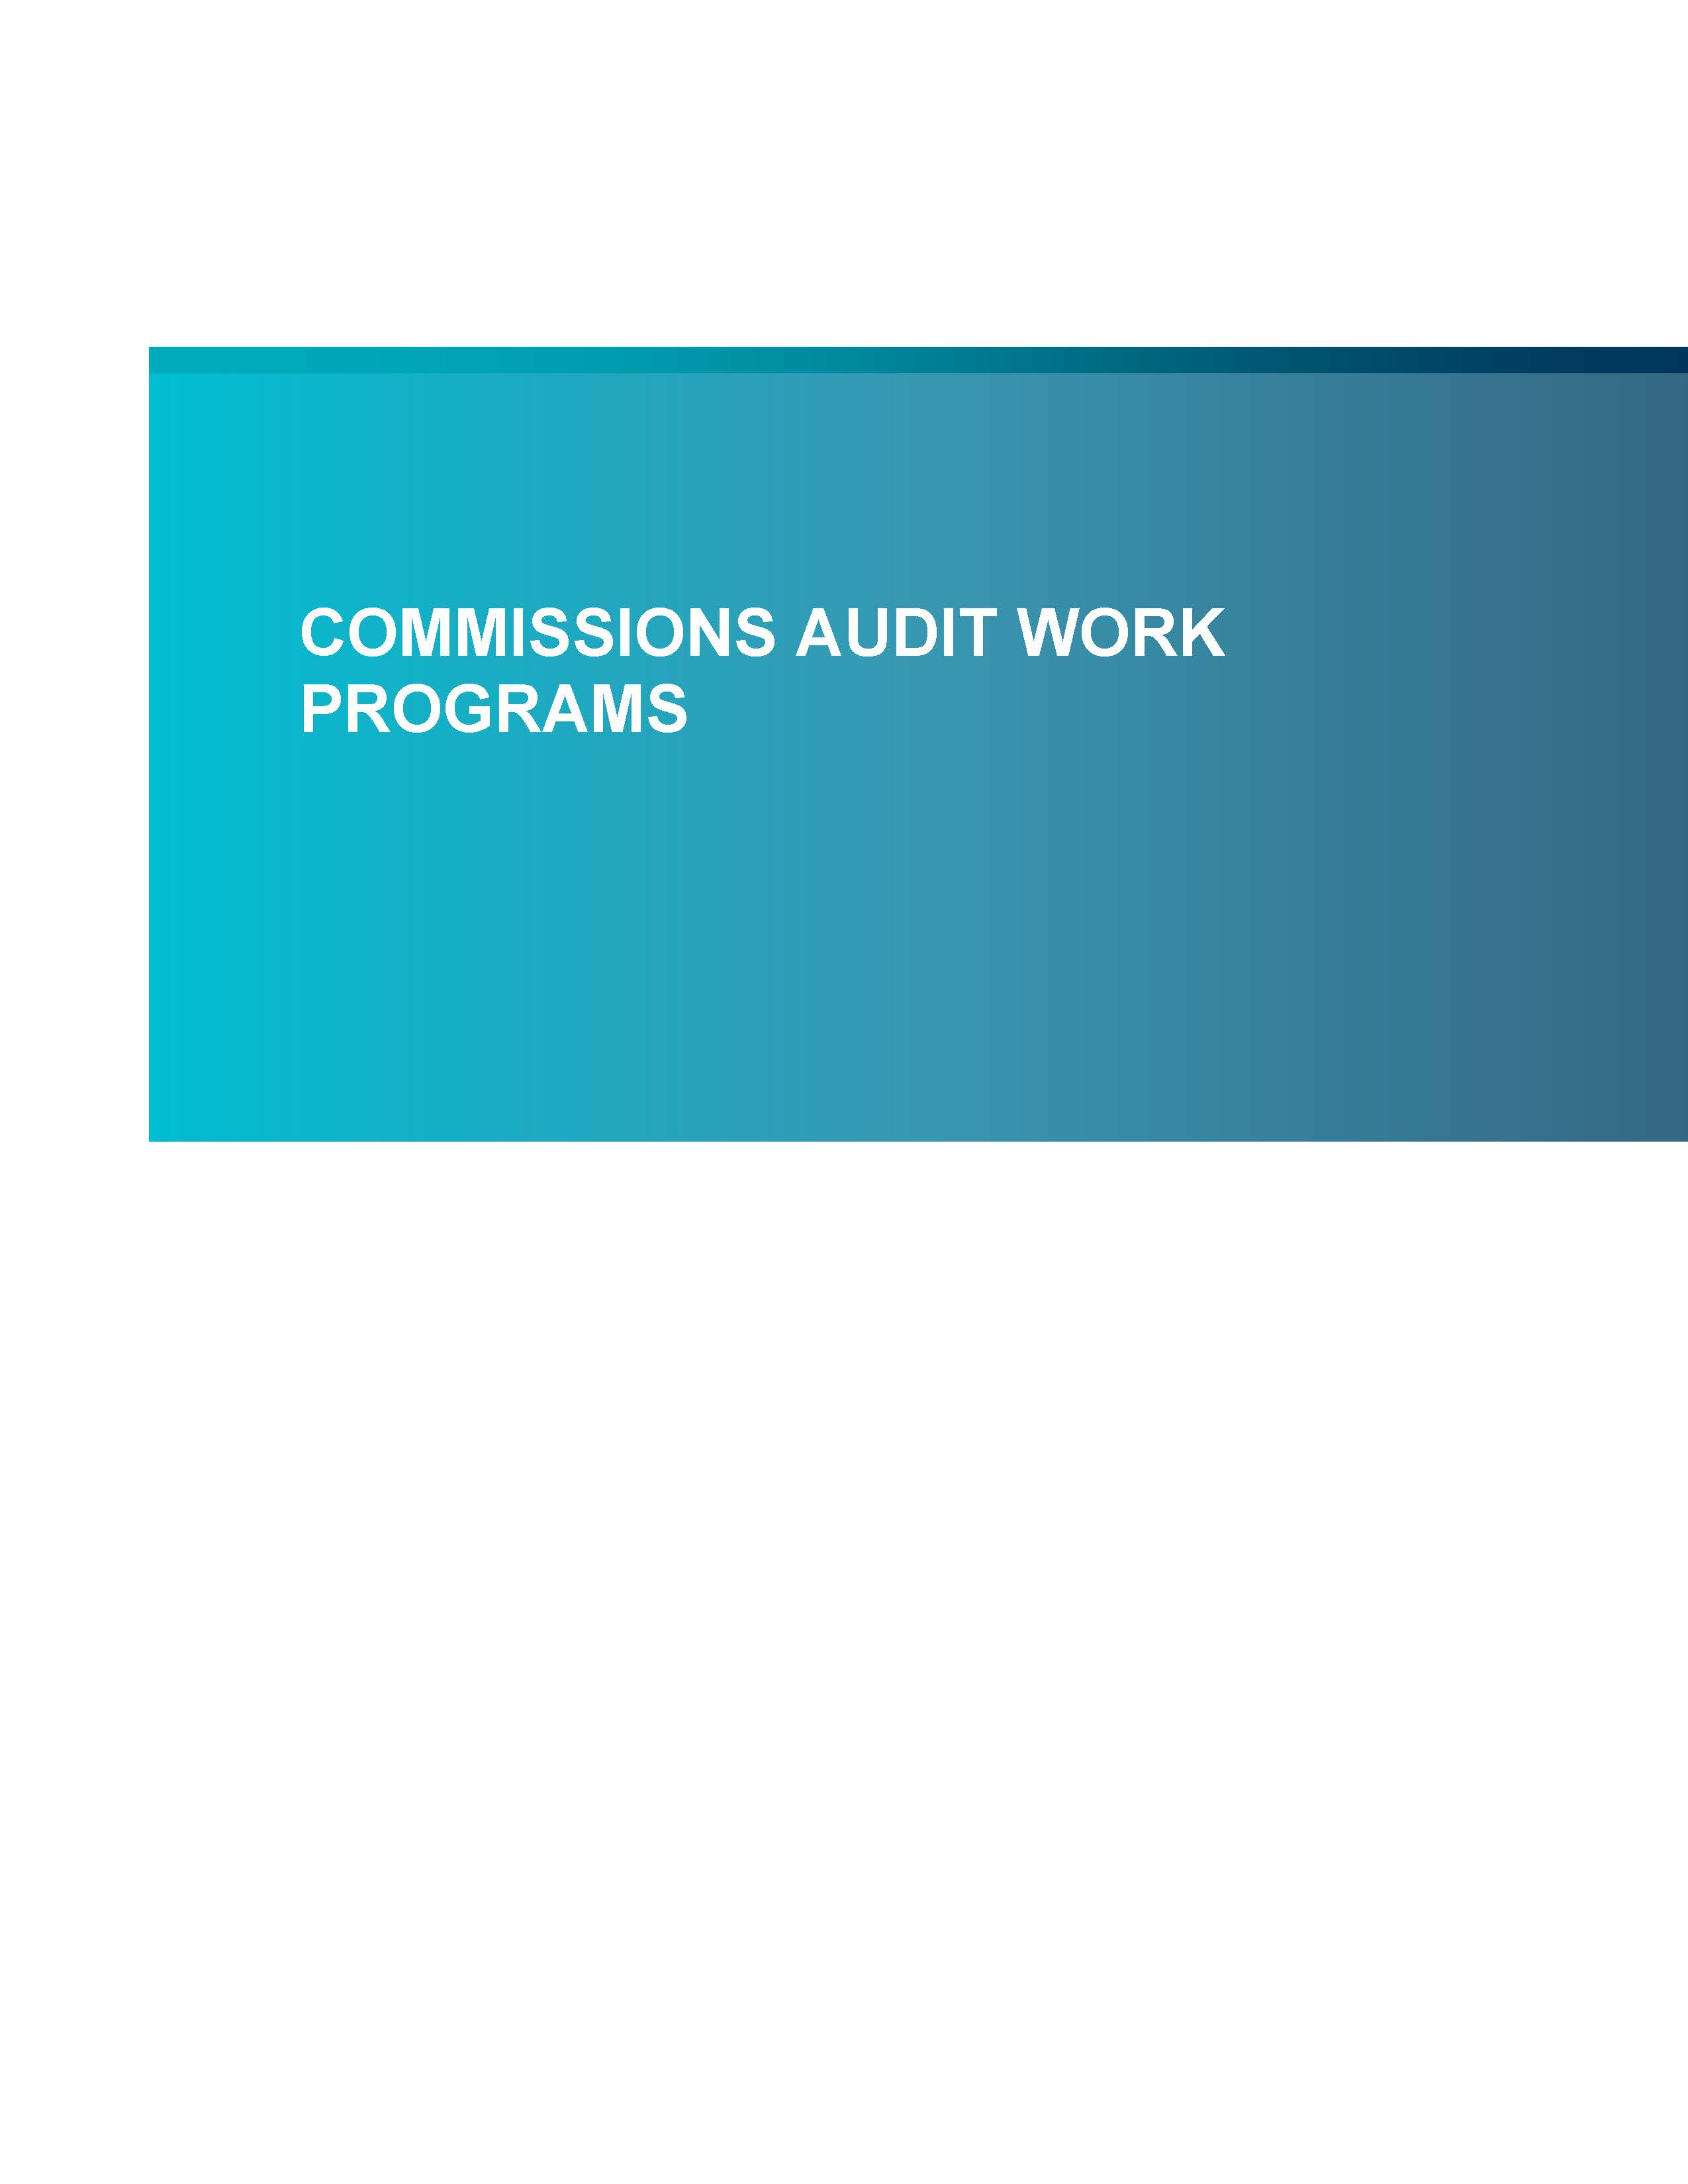 Screenshot of first page of Commissions Audit Work Program